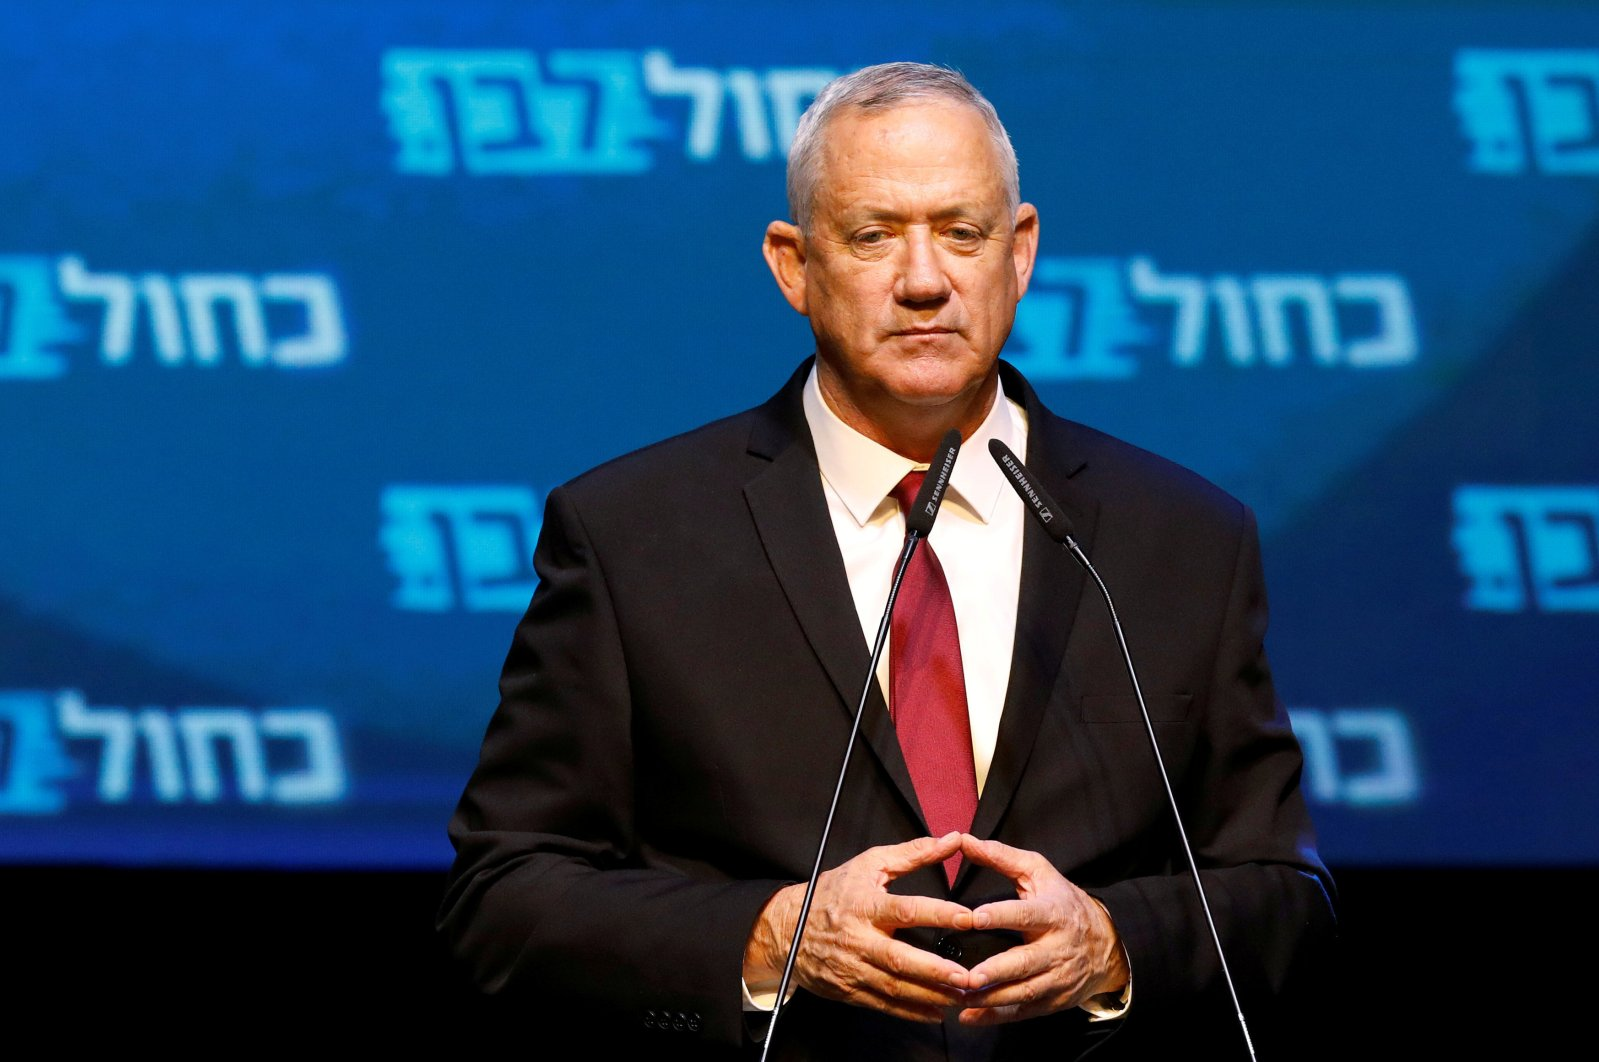 Blue and White party leader Benny Gantz reacts at the party's headquarters following the announcement of exit polls during Israel's parliamentary election in Tel Aviv, Israel September 18, 2019. (REUTERS Photo)